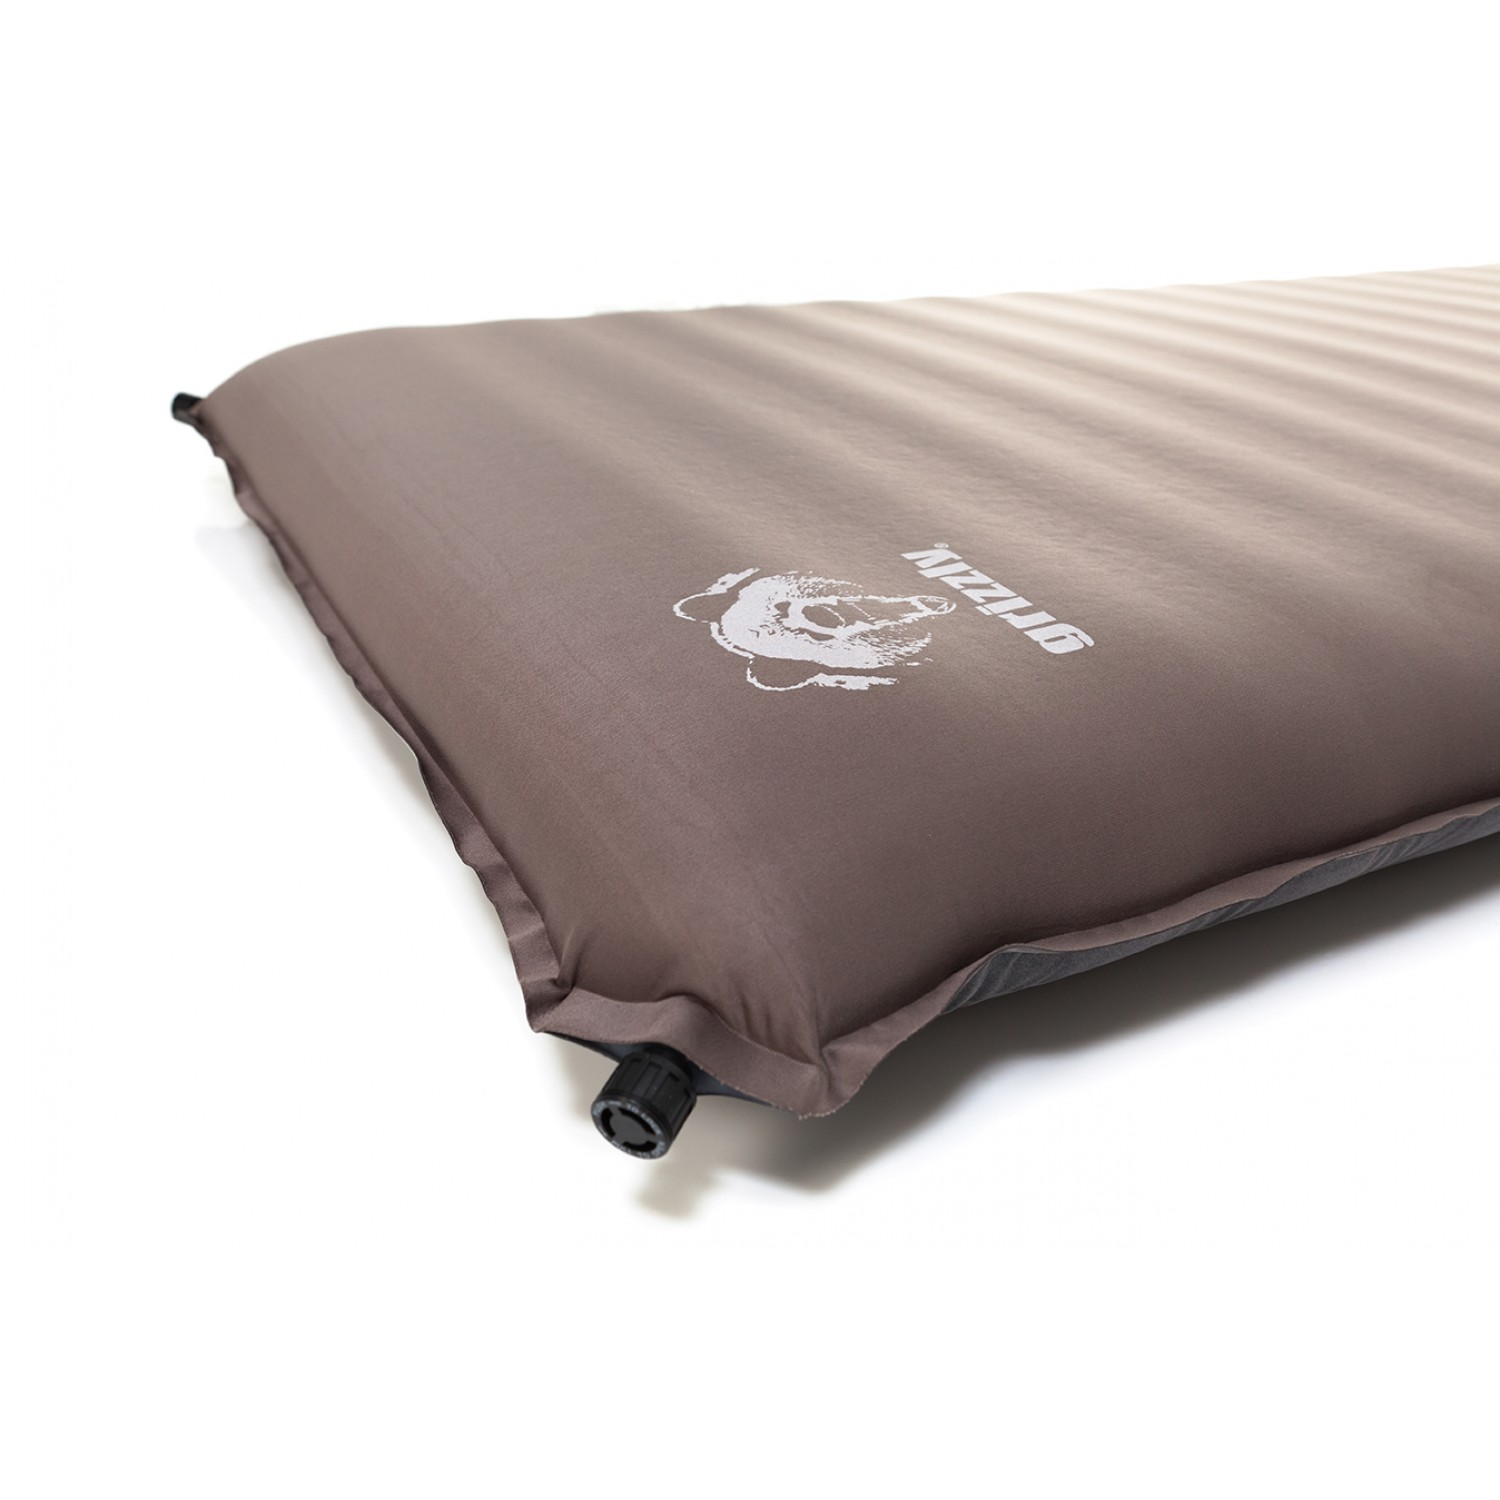 Grizzly 4 Quot Camping Air Mattress